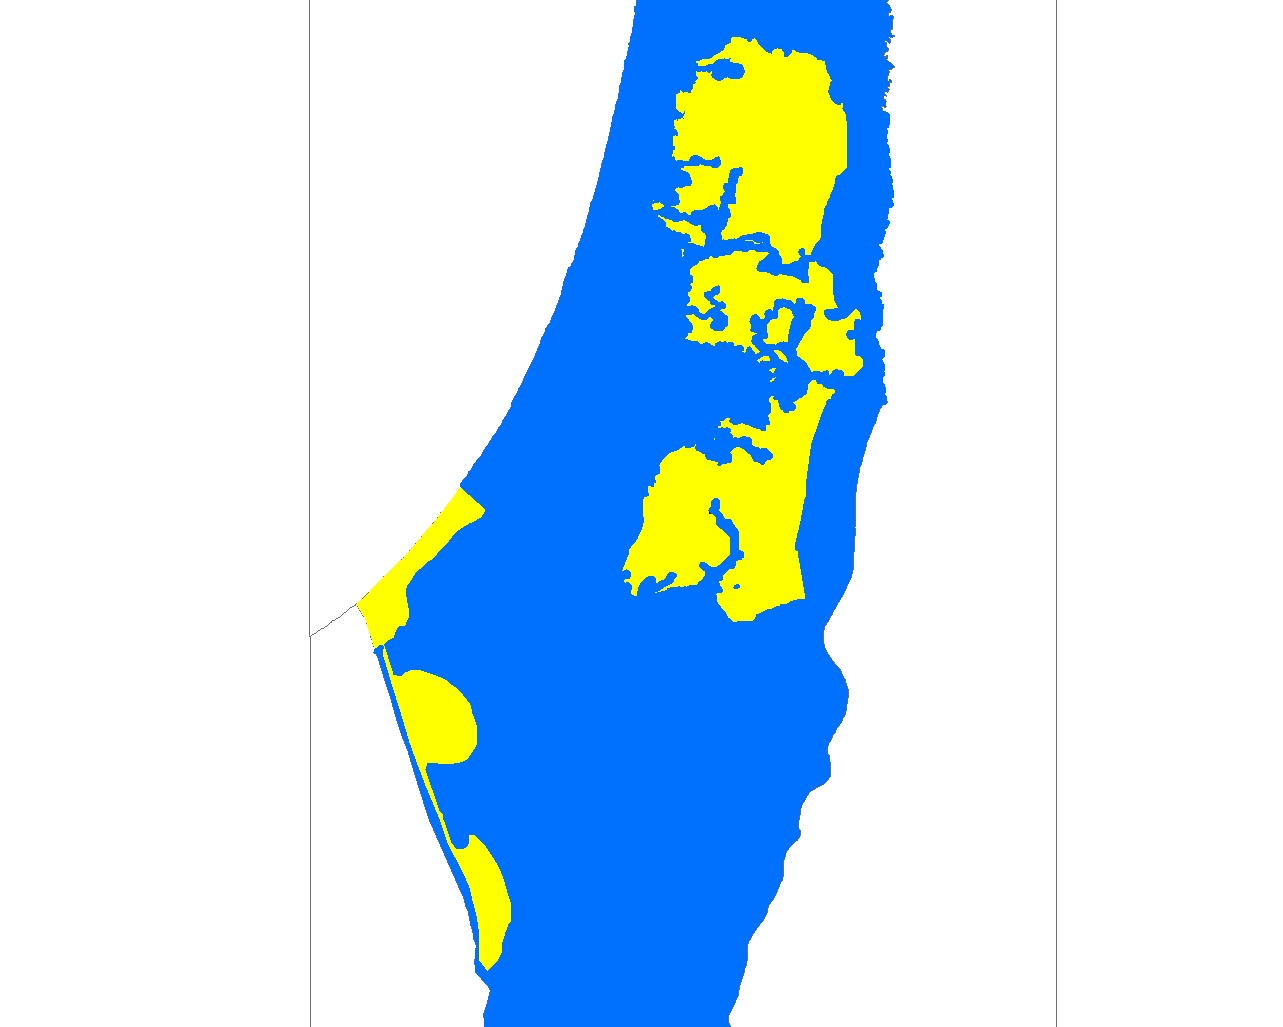 Trump Plan map of a Palestinian state (yellow)